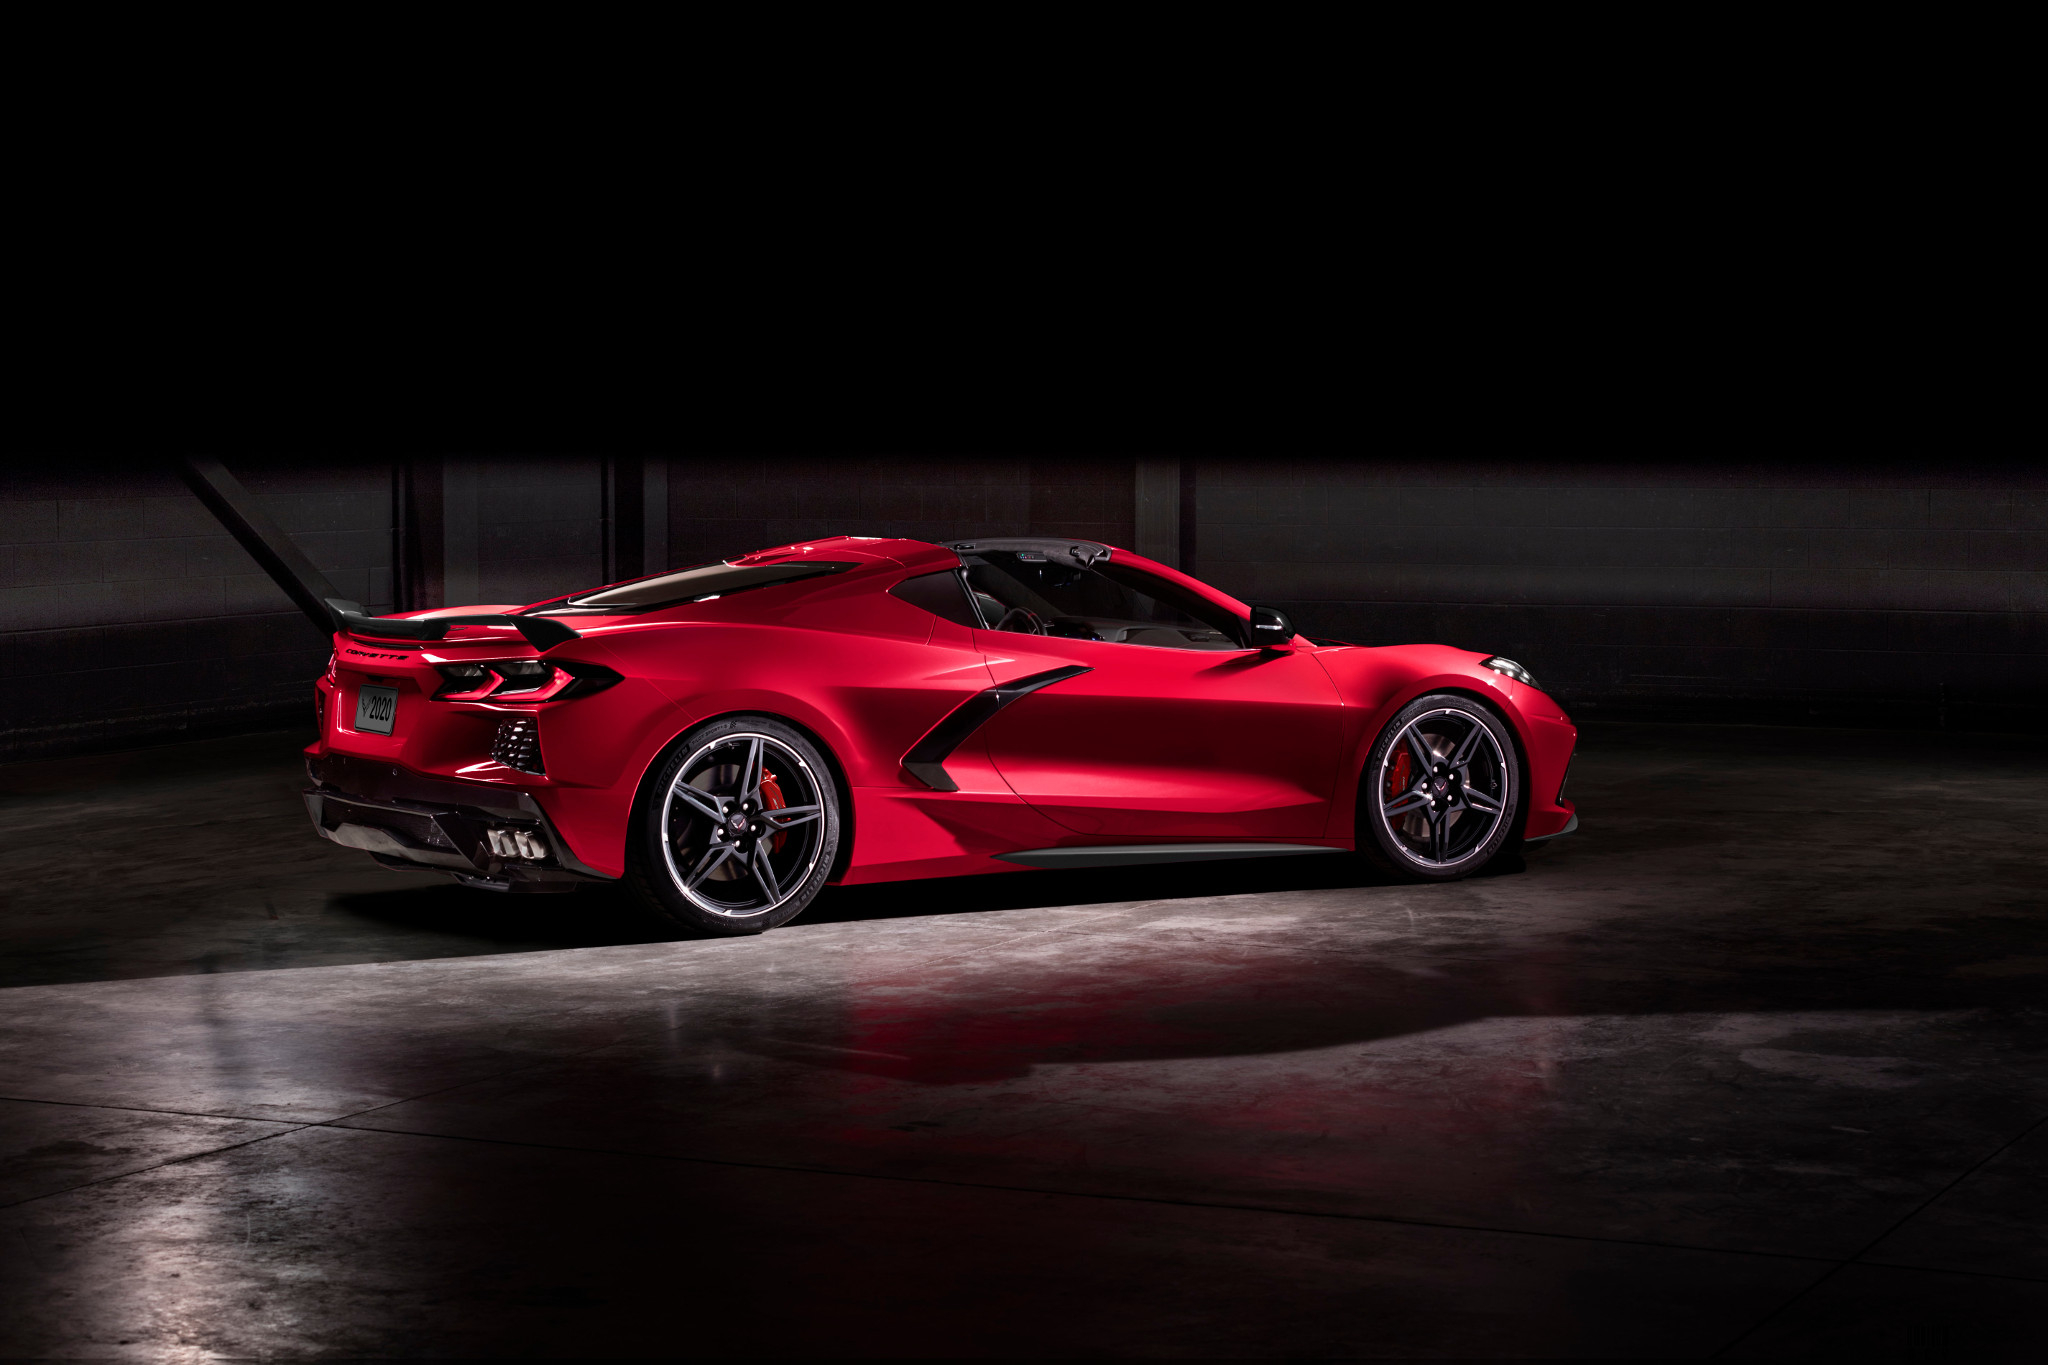 2020 Chevrolet Corvette Stingray: 8 Fast Facts About The 2021 Chevrolet Corvette Stingray Manual, Models, Owners Manual